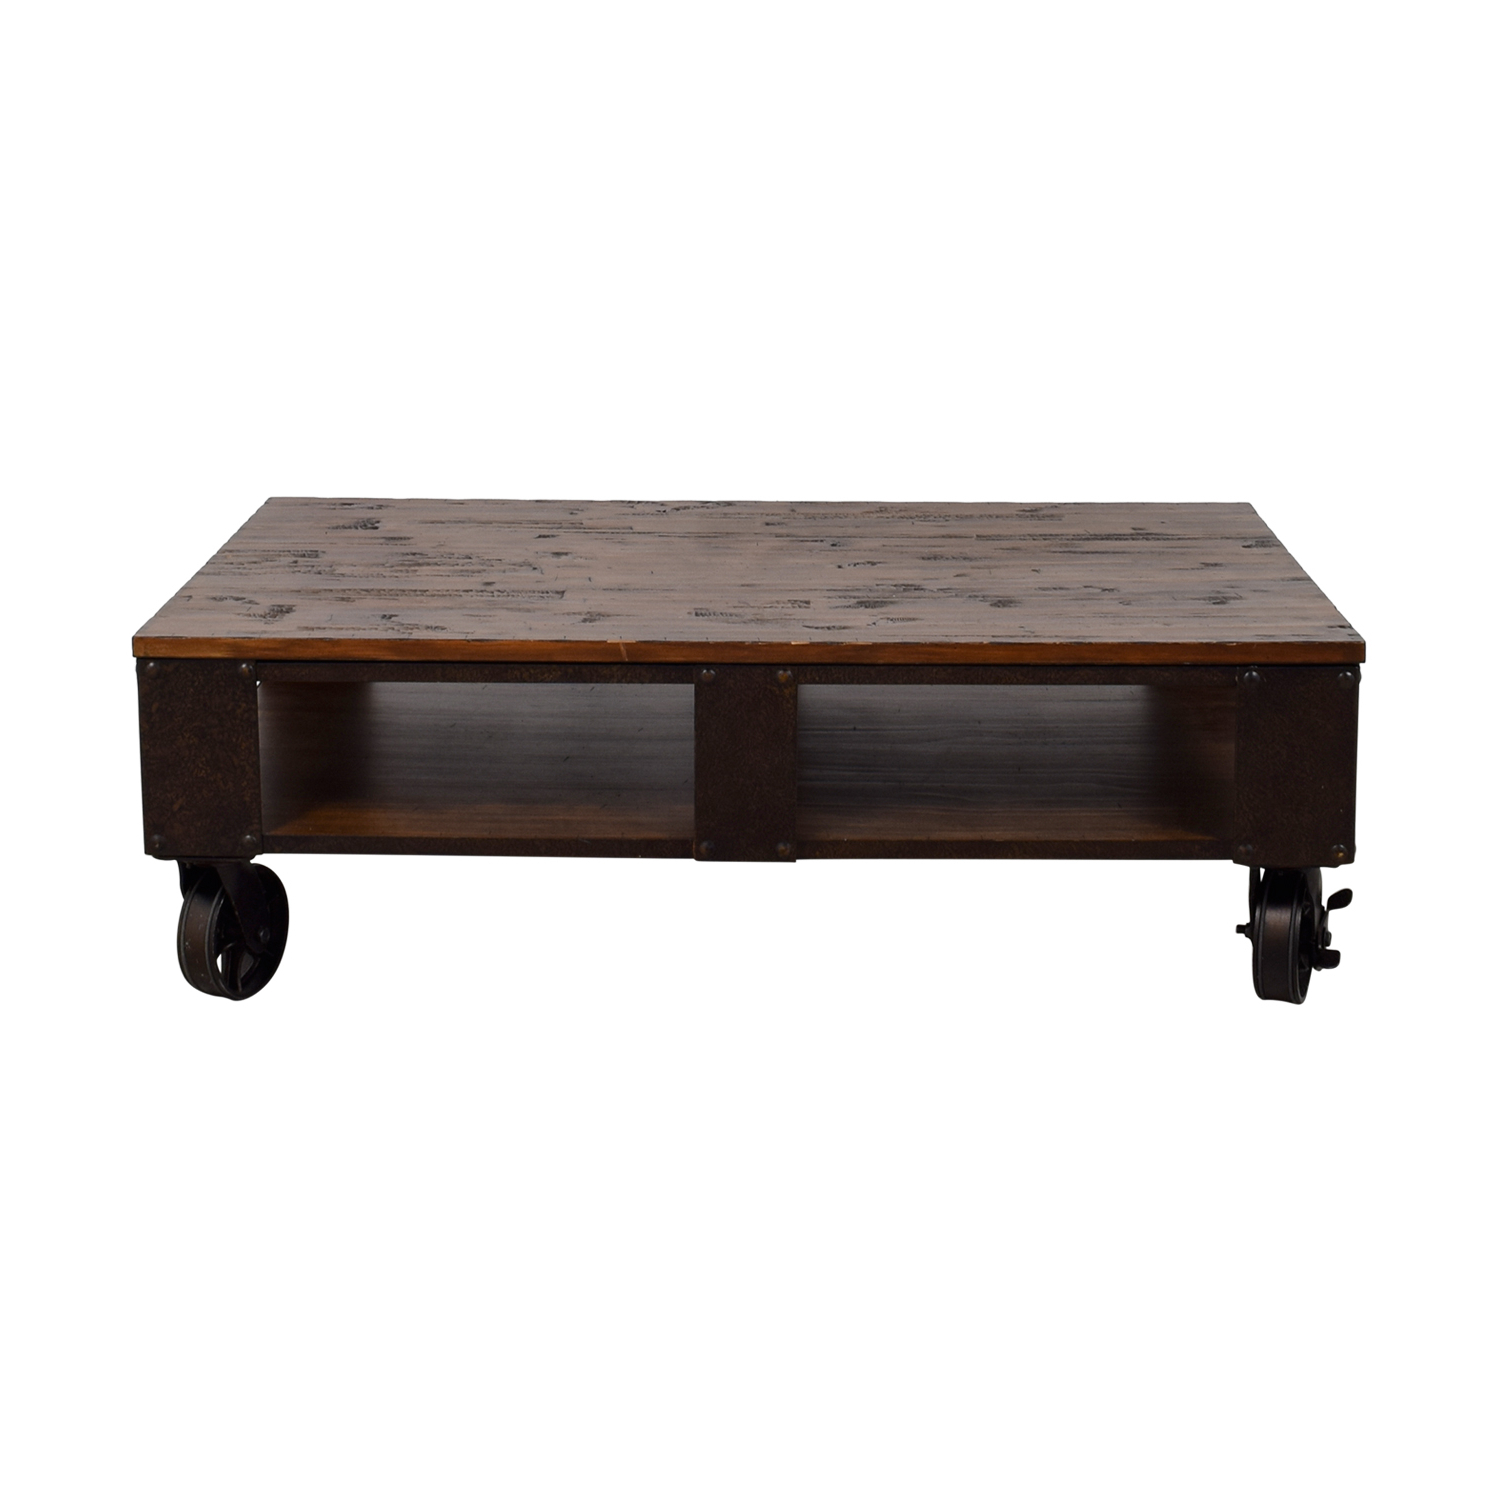 [%59% Off – Magnussen Magnussen T1755 Pinebrook Distressed Natural With Regard To Trendy Natural Pine Coffee Tables|Natural Pine Coffee Tables Throughout Newest 59% Off – Magnussen Magnussen T1755 Pinebrook Distressed Natural|Current Natural Pine Coffee Tables Intended For 59% Off – Magnussen Magnussen T1755 Pinebrook Distressed Natural|Famous 59% Off – Magnussen Magnussen T1755 Pinebrook Distressed Natural Inside Natural Pine Coffee Tables%] (View 1 of 20)